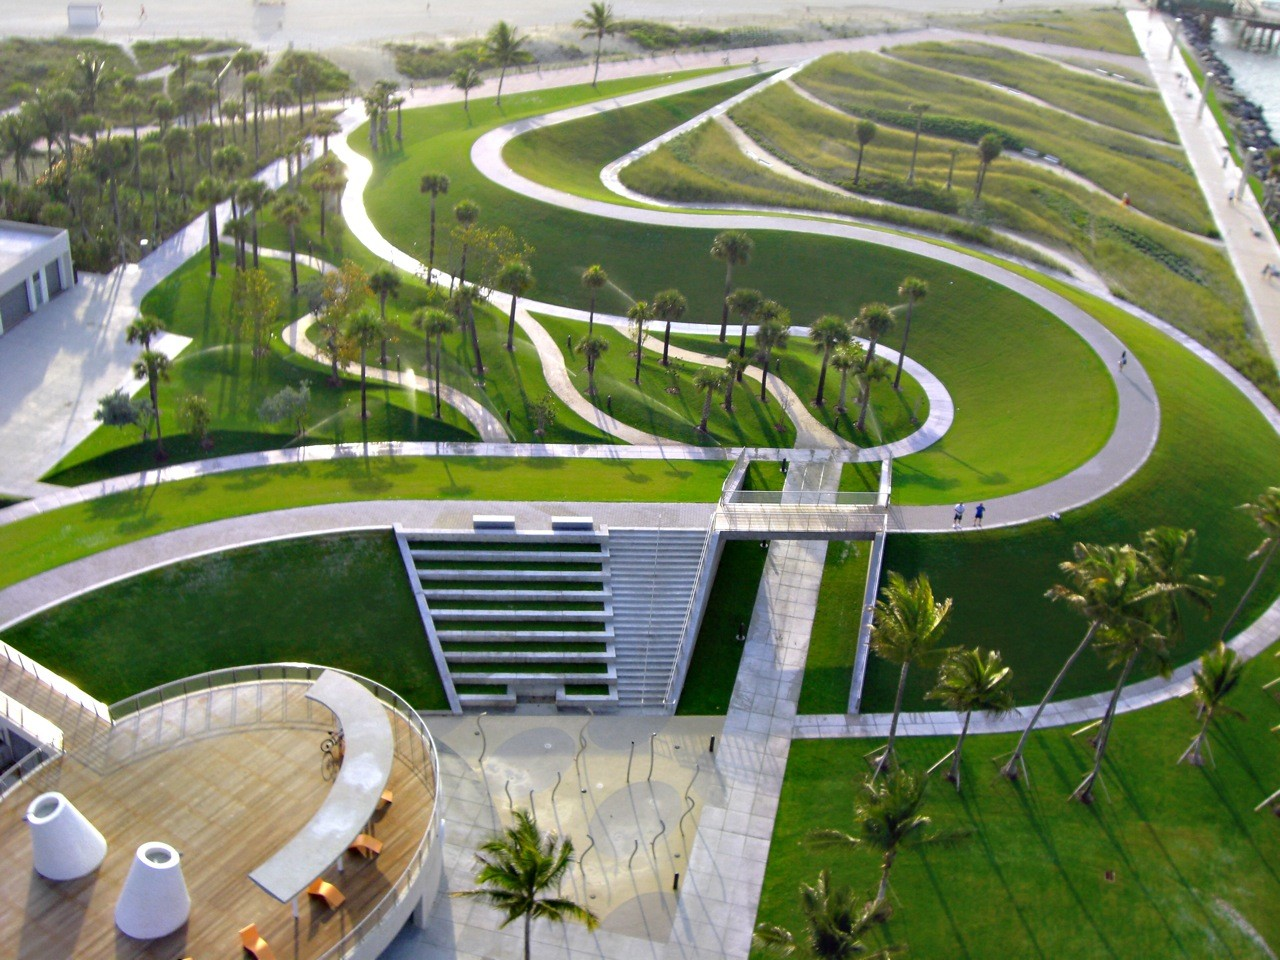 South pointe park hargreaves associates archdaily for Park landscape design